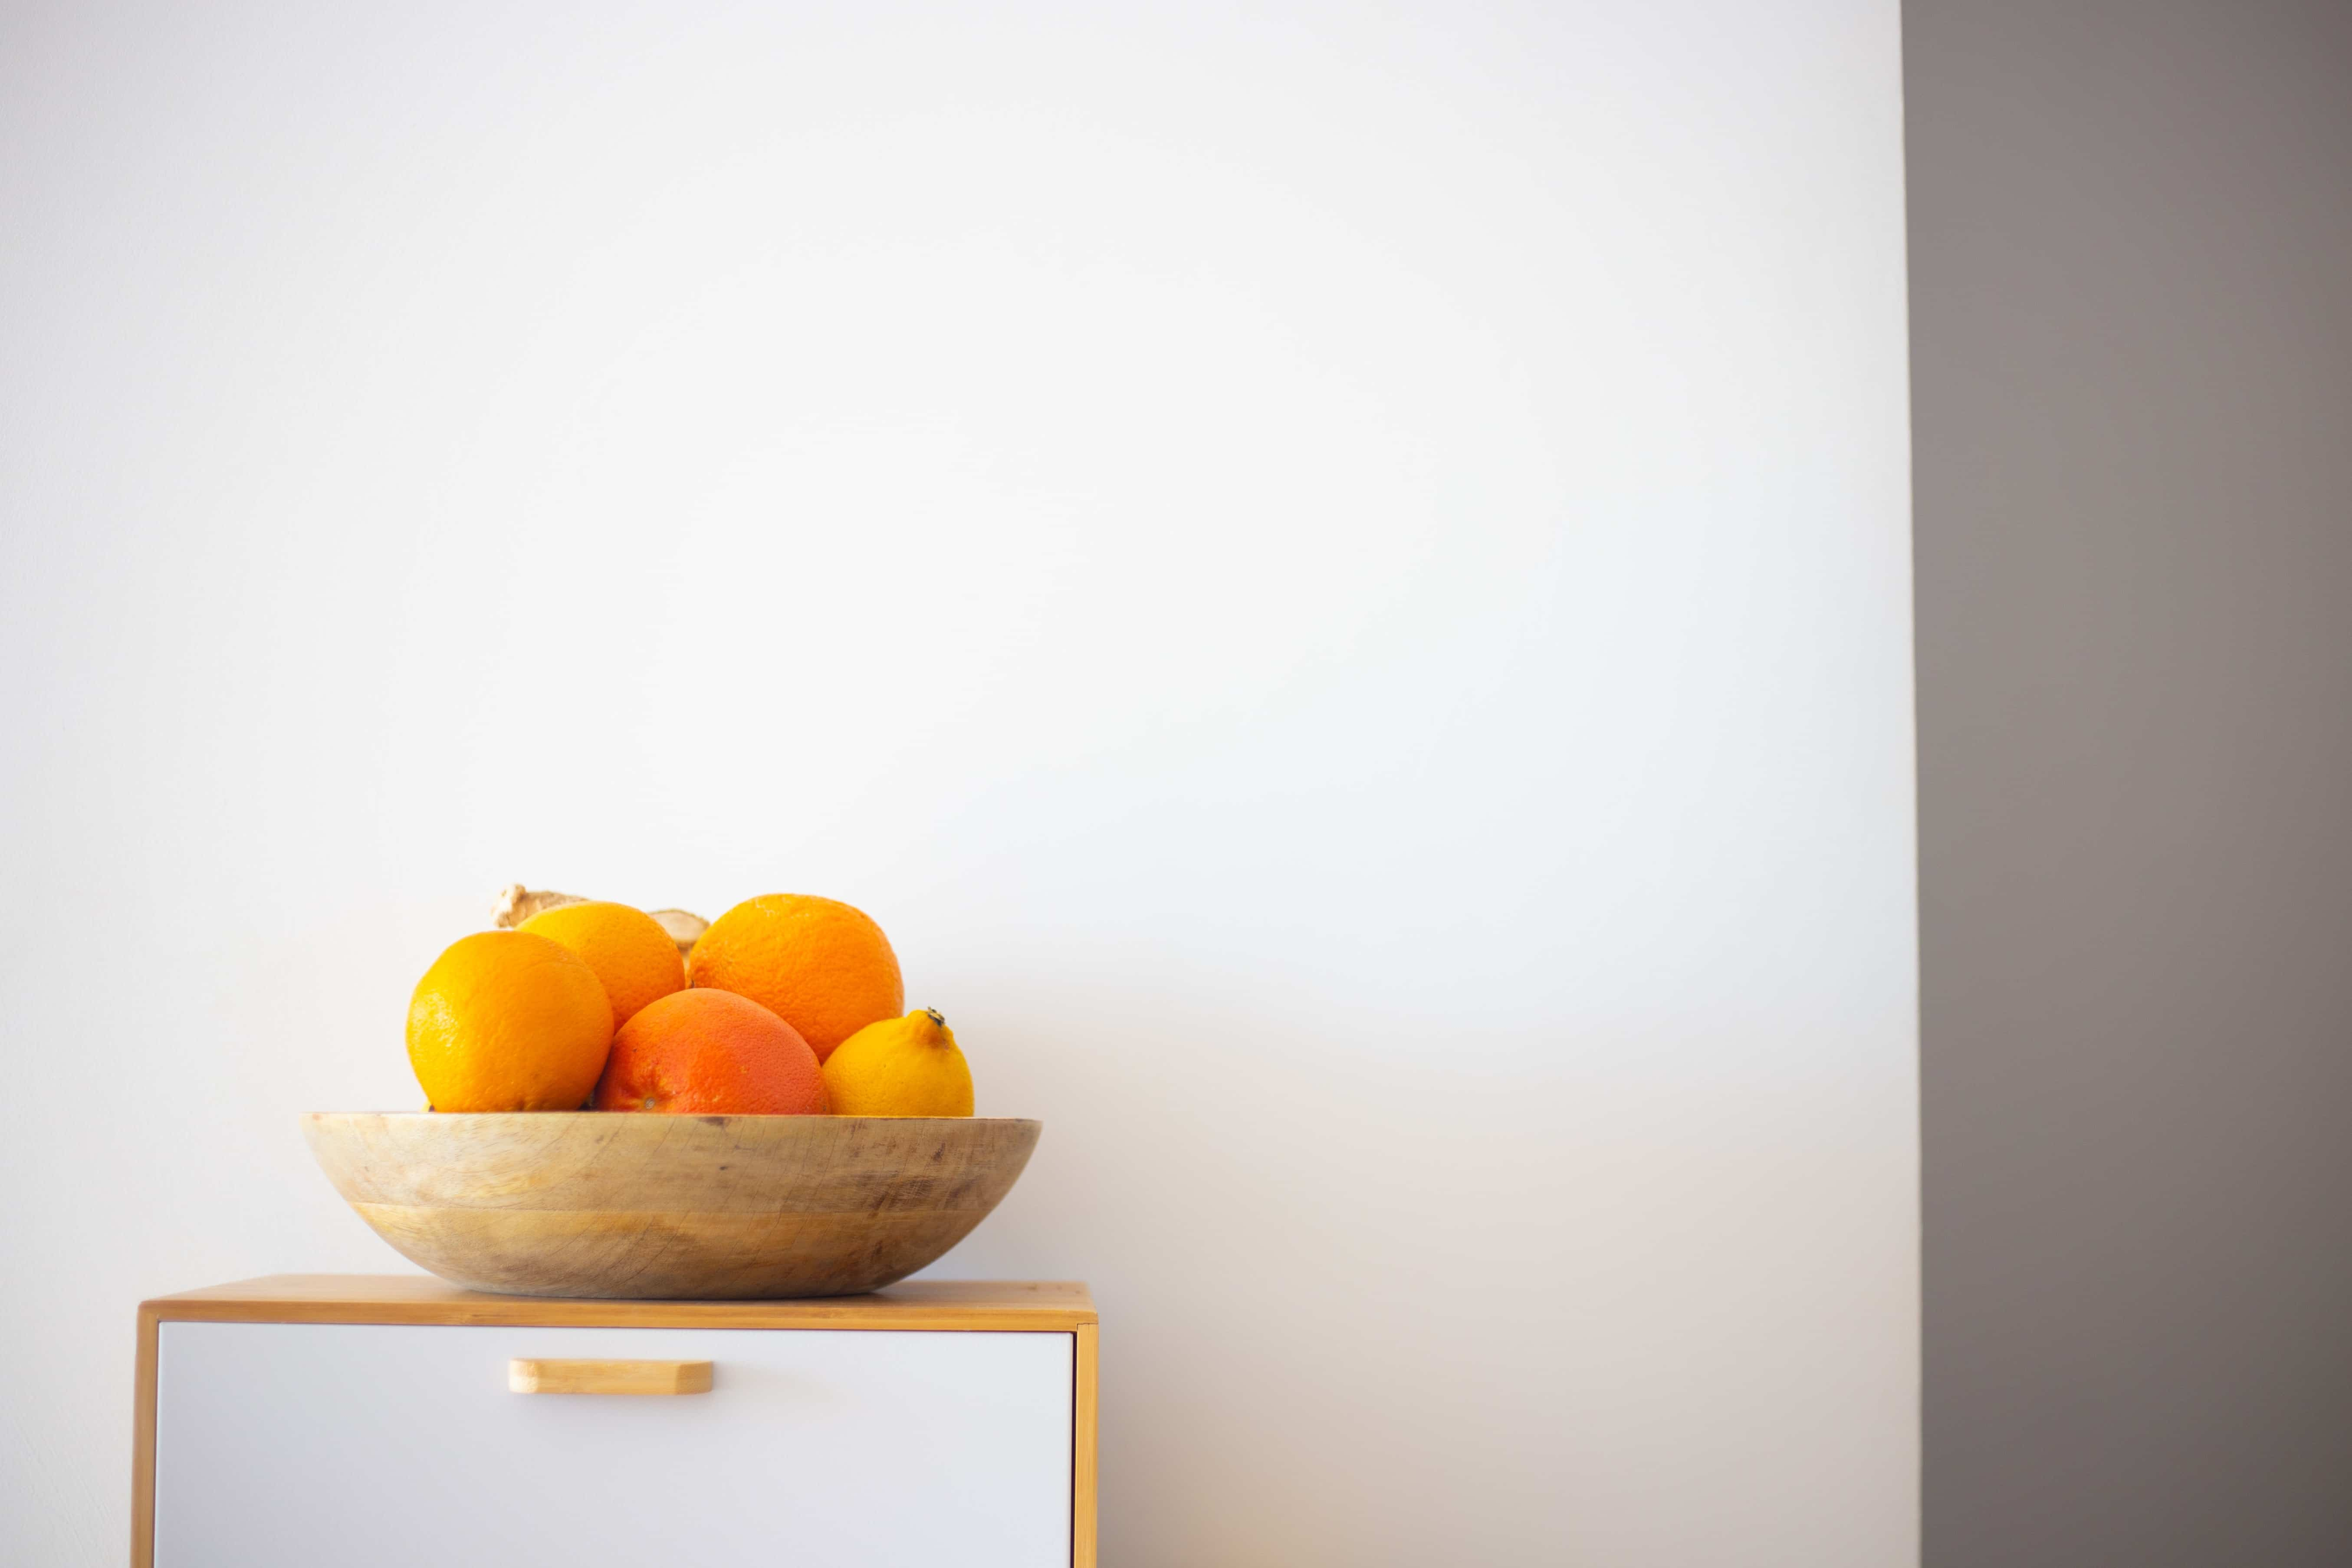 How Long Will Oranges Last at Room Temperature